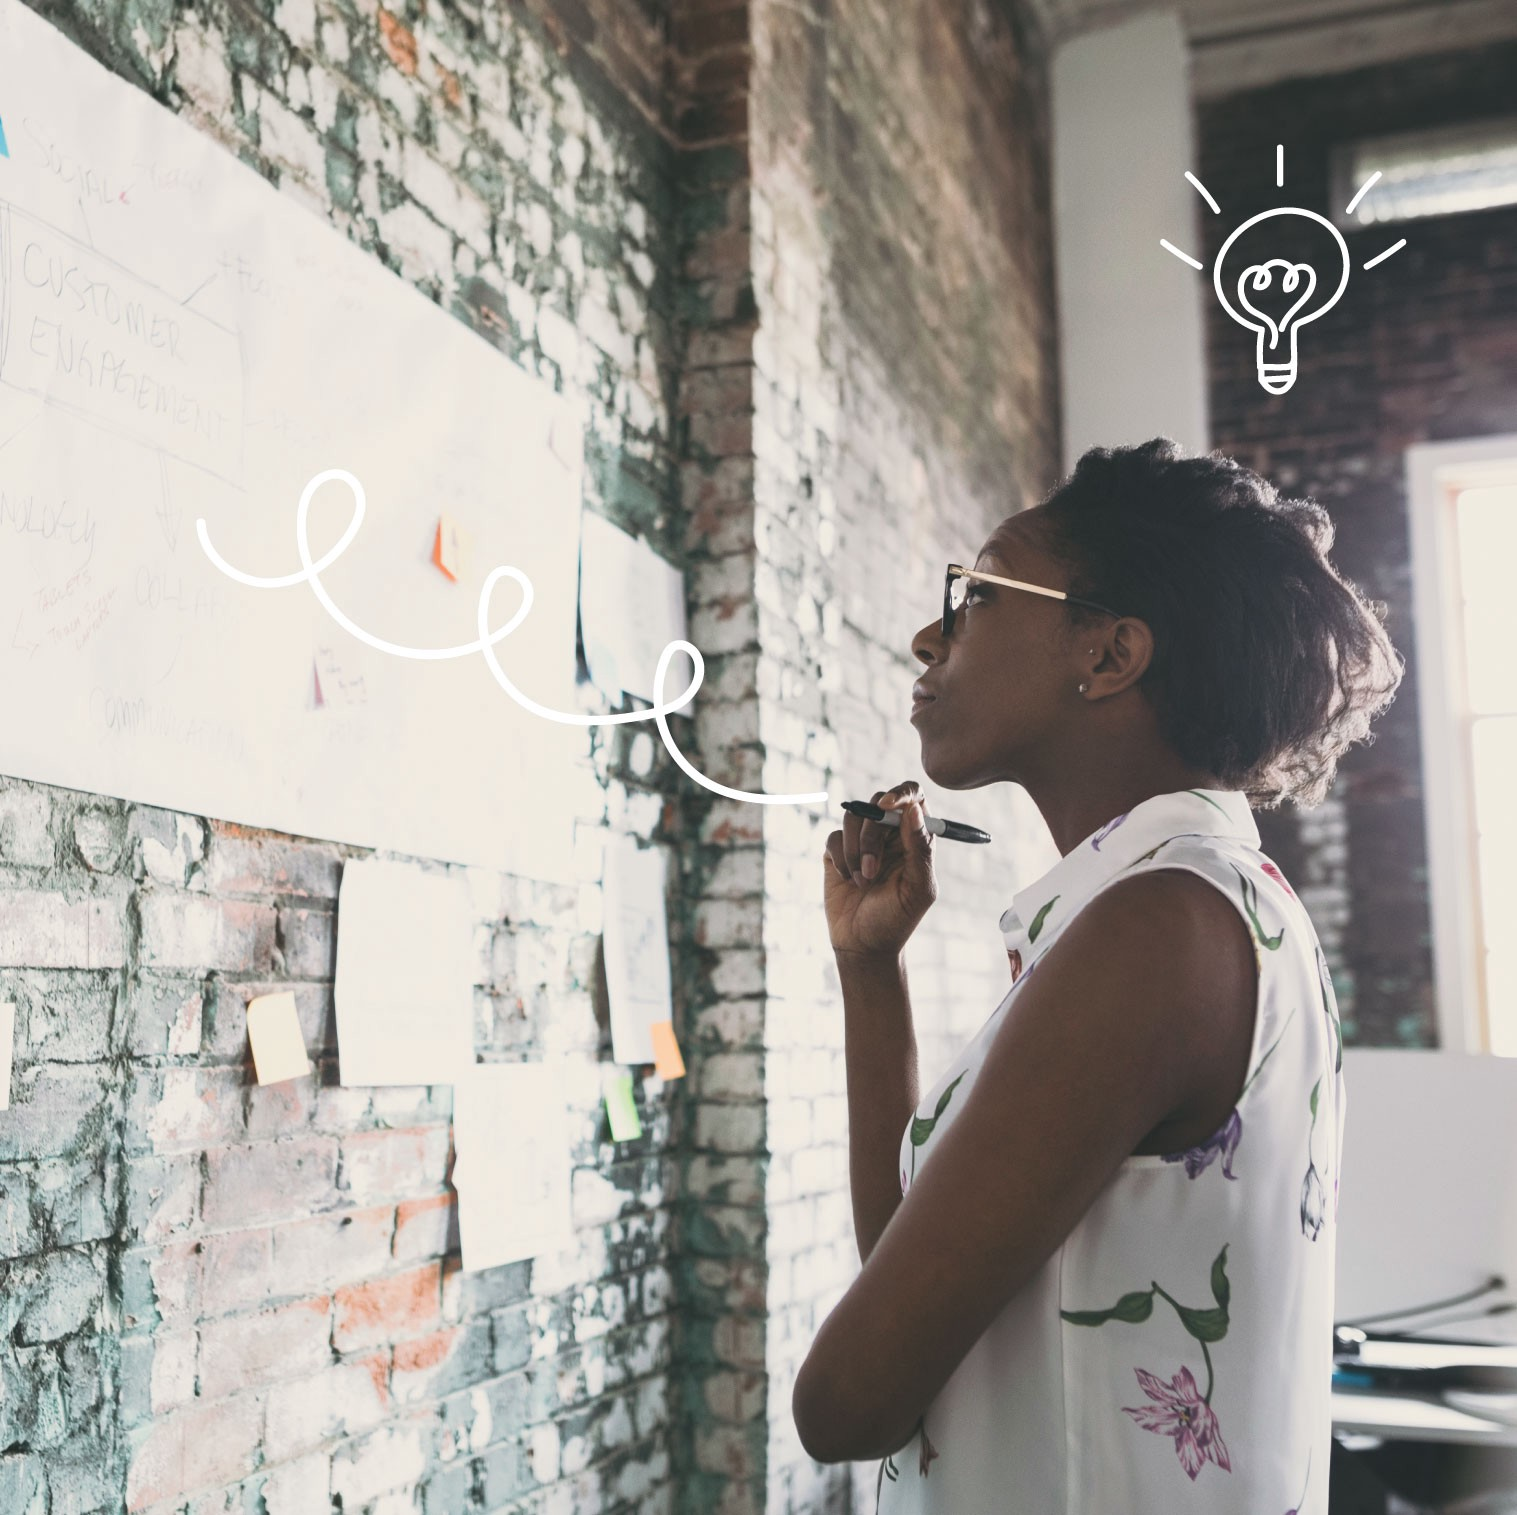 Woman standing in front of wall, writing on a white board